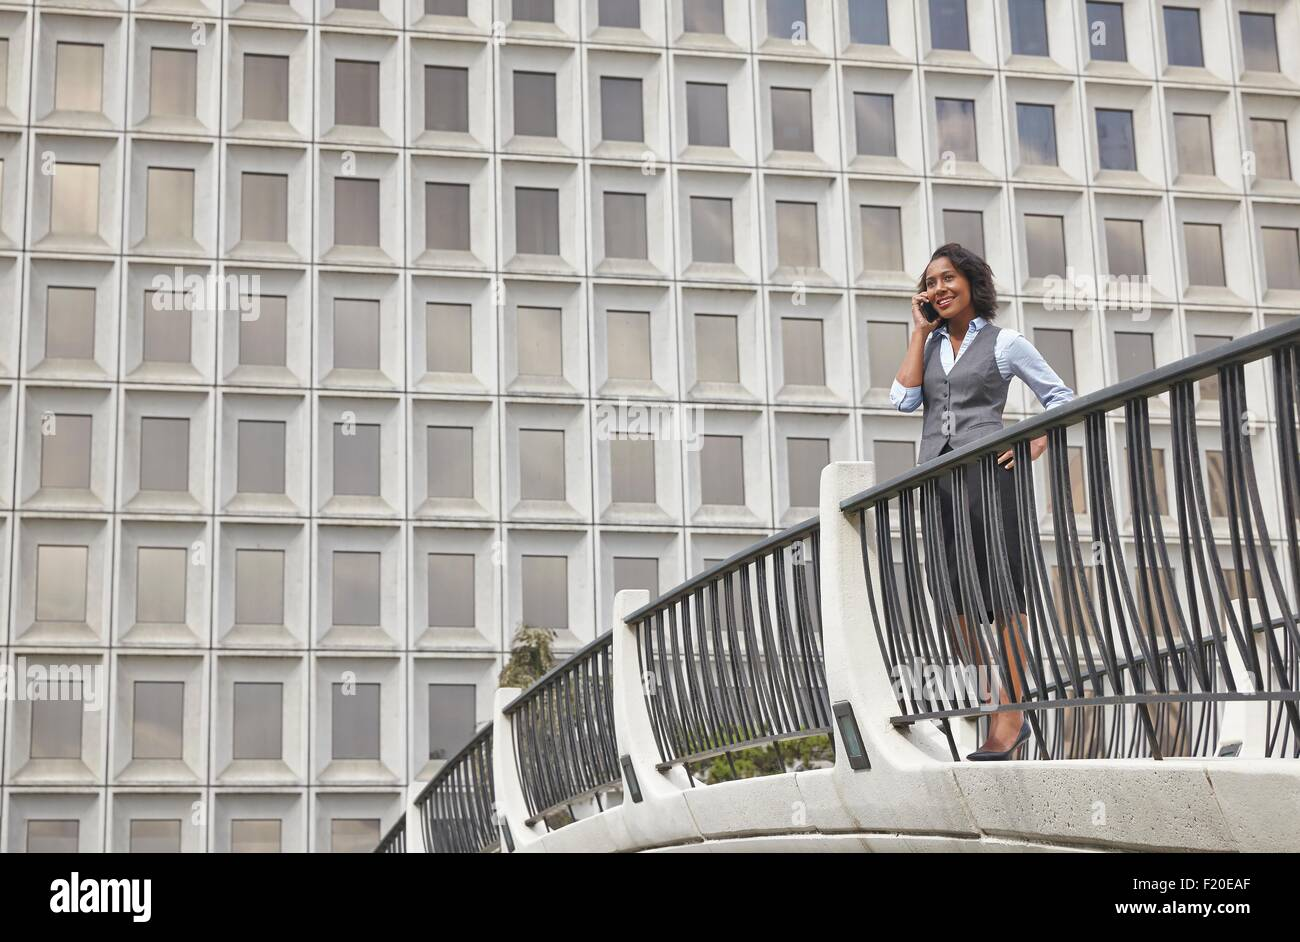 Business woman standing behind railings in front of built structure, using smartphone to make call - Stock Image